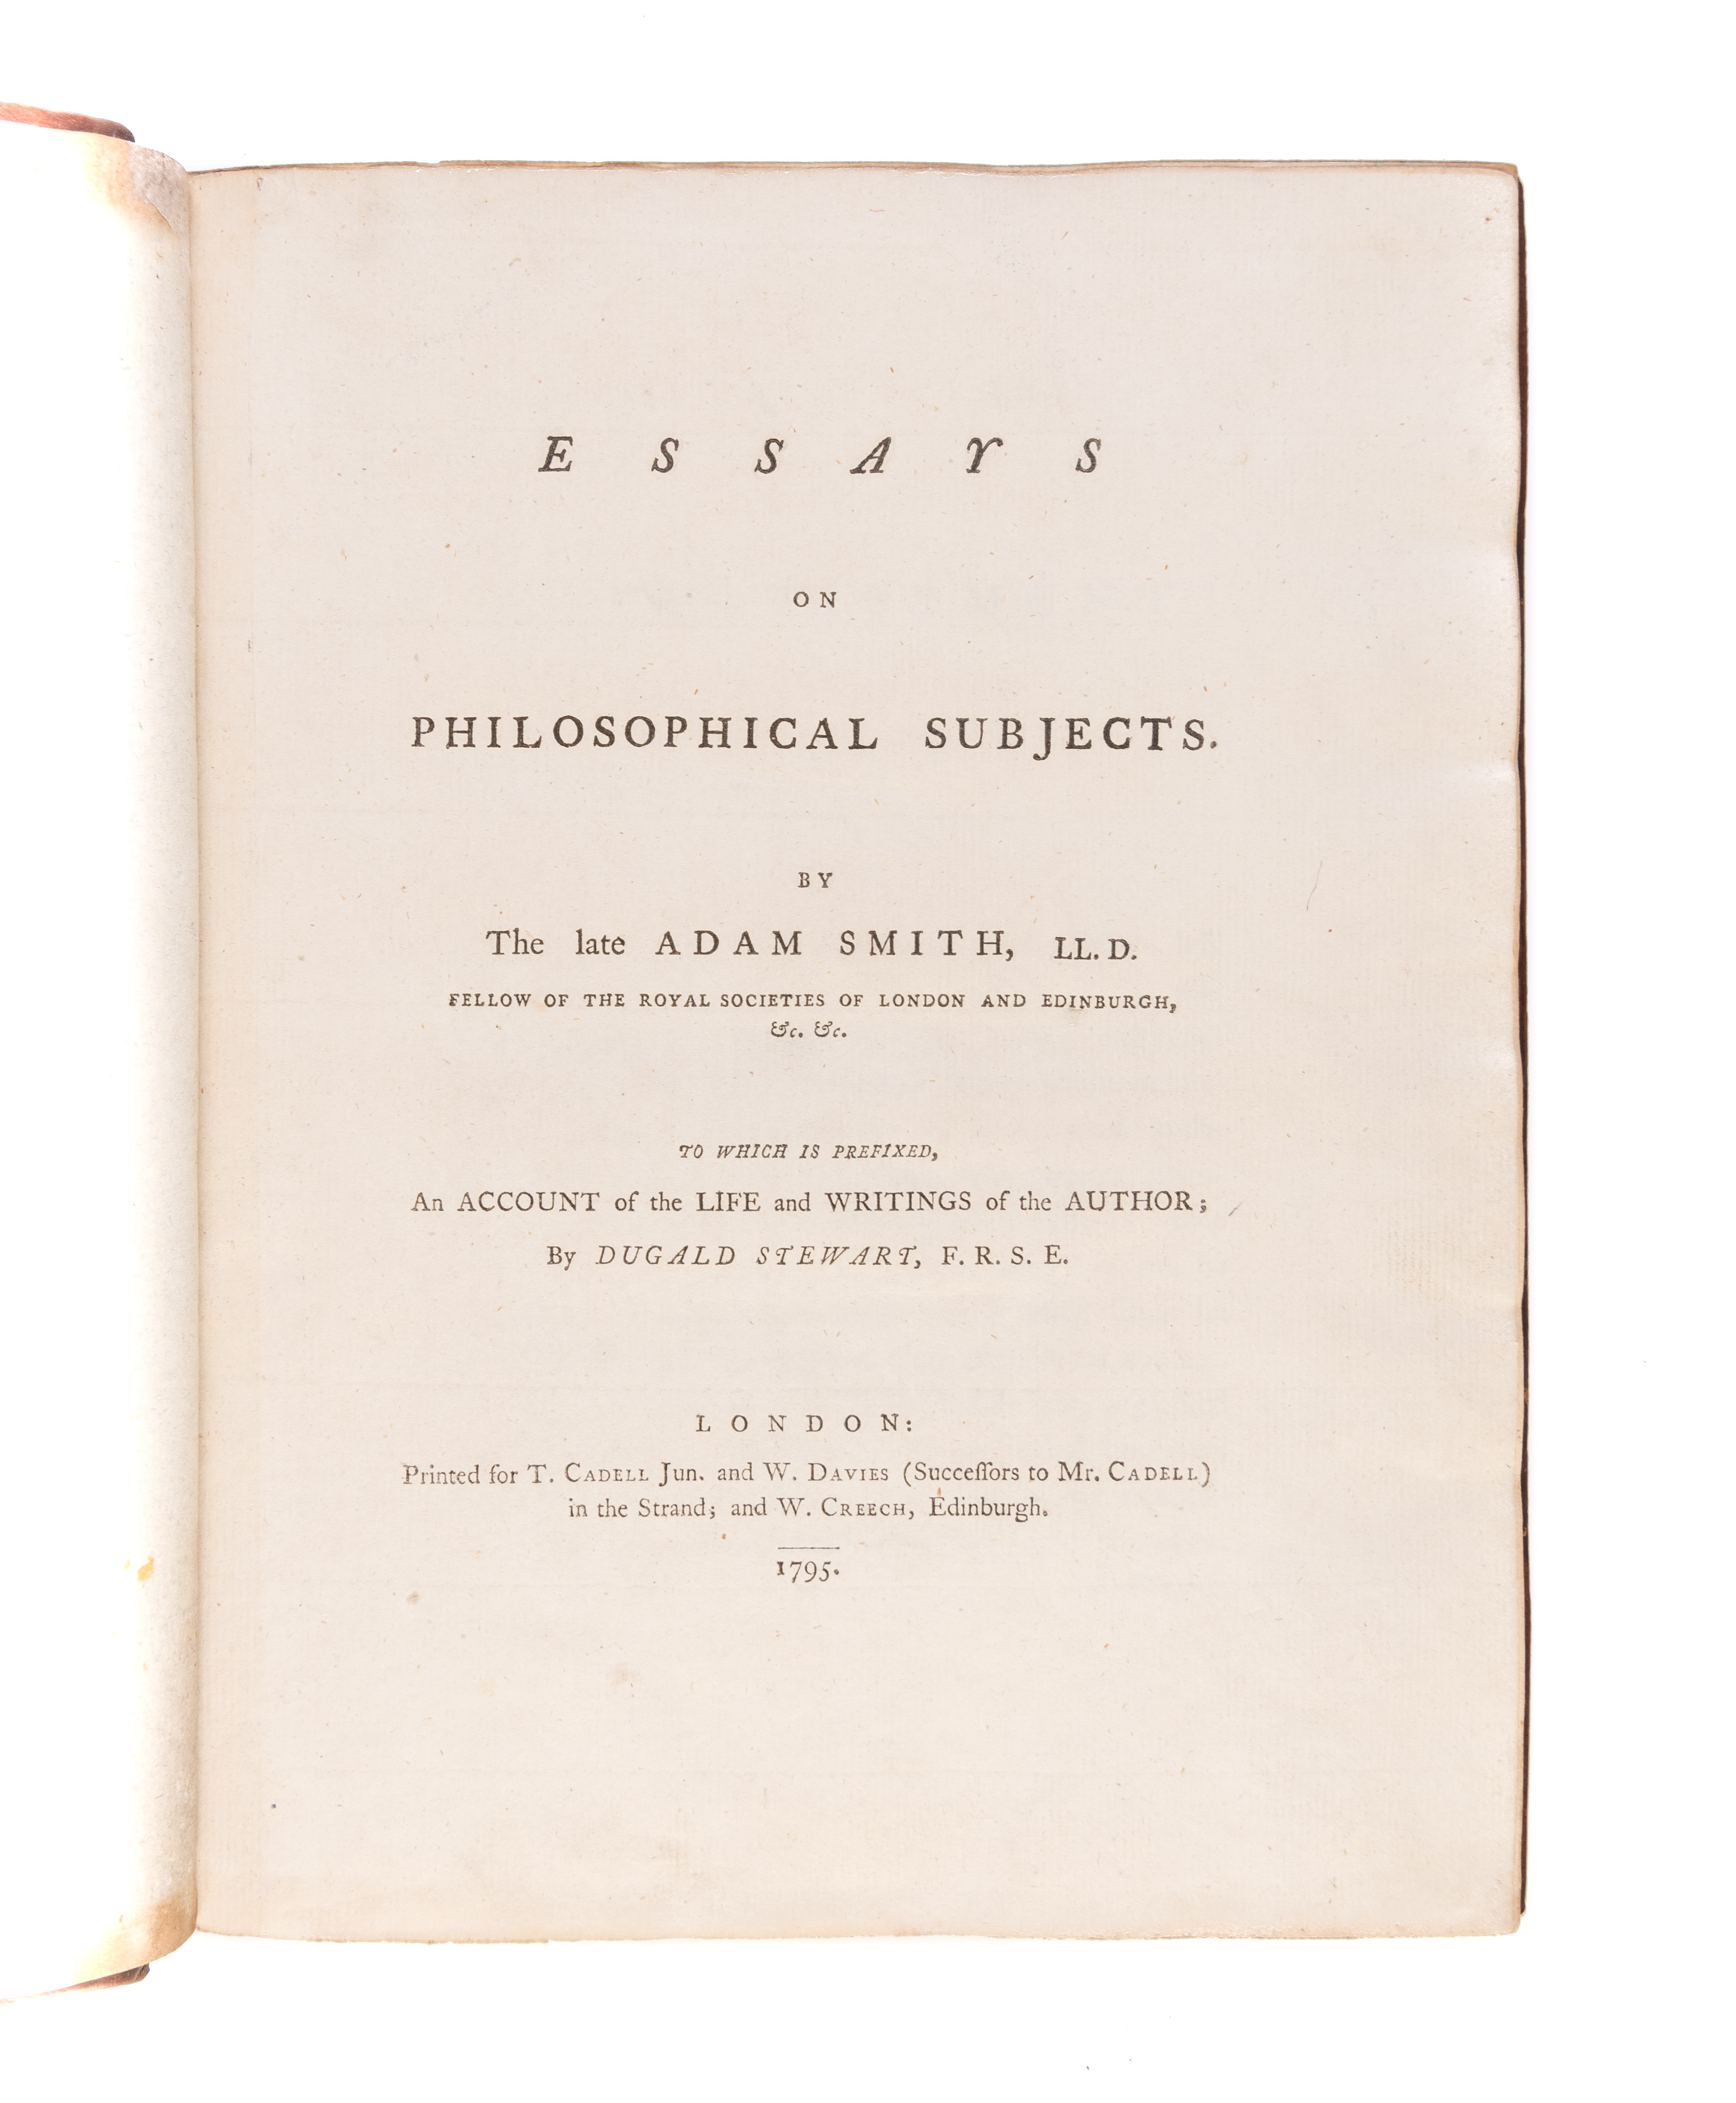 004 Essays On Philosophical Subjects 55036 01 Essay Best Summary Adam Smith Full